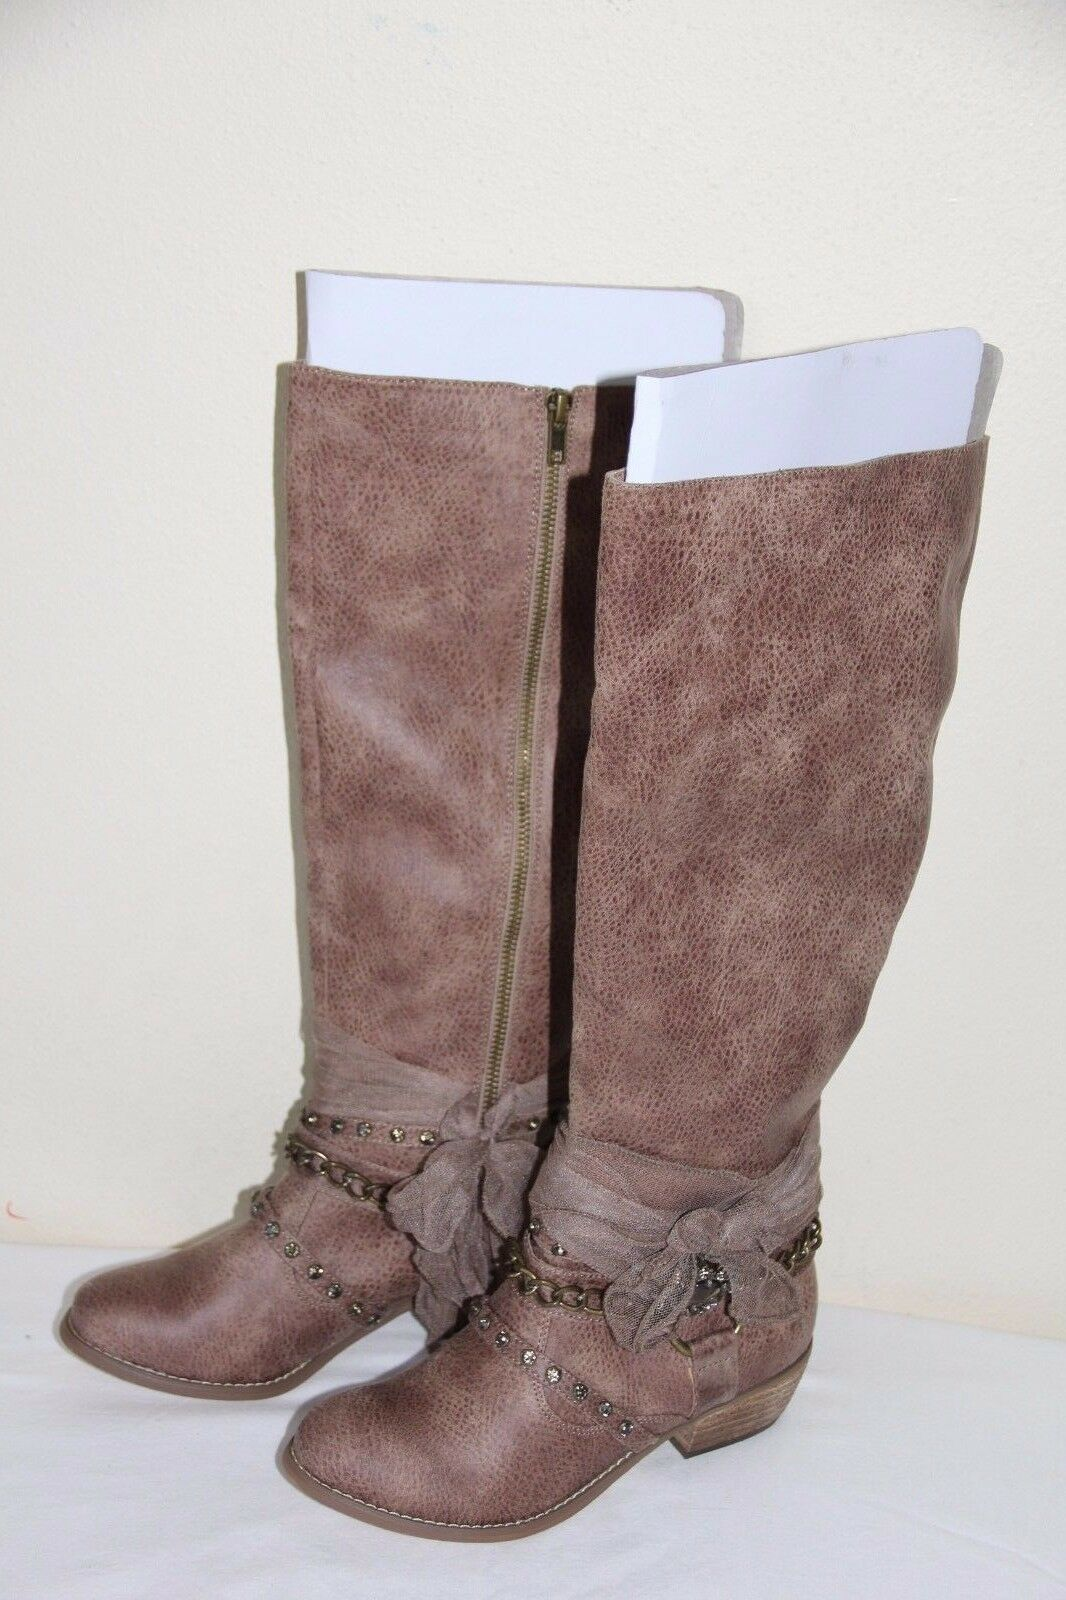 NEW Not Rated  Women's Tall Winter Cowboy Knee High Boots  shoes Size 6